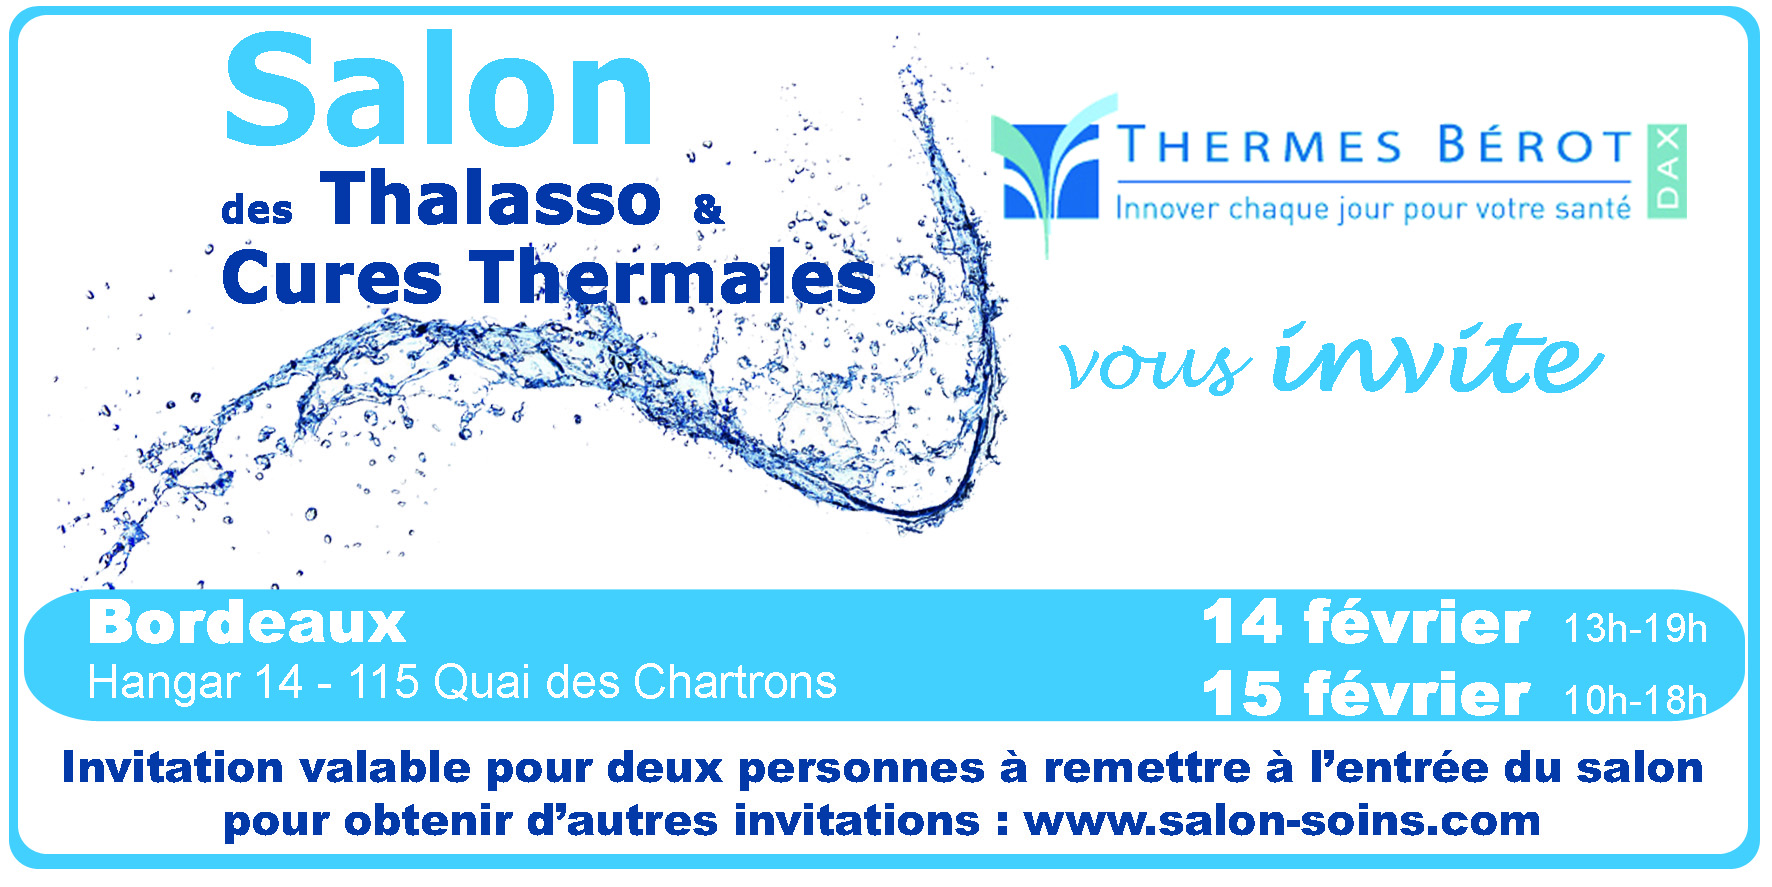 Salon Thalasso et Cures thermales de Bordeaux en 2019